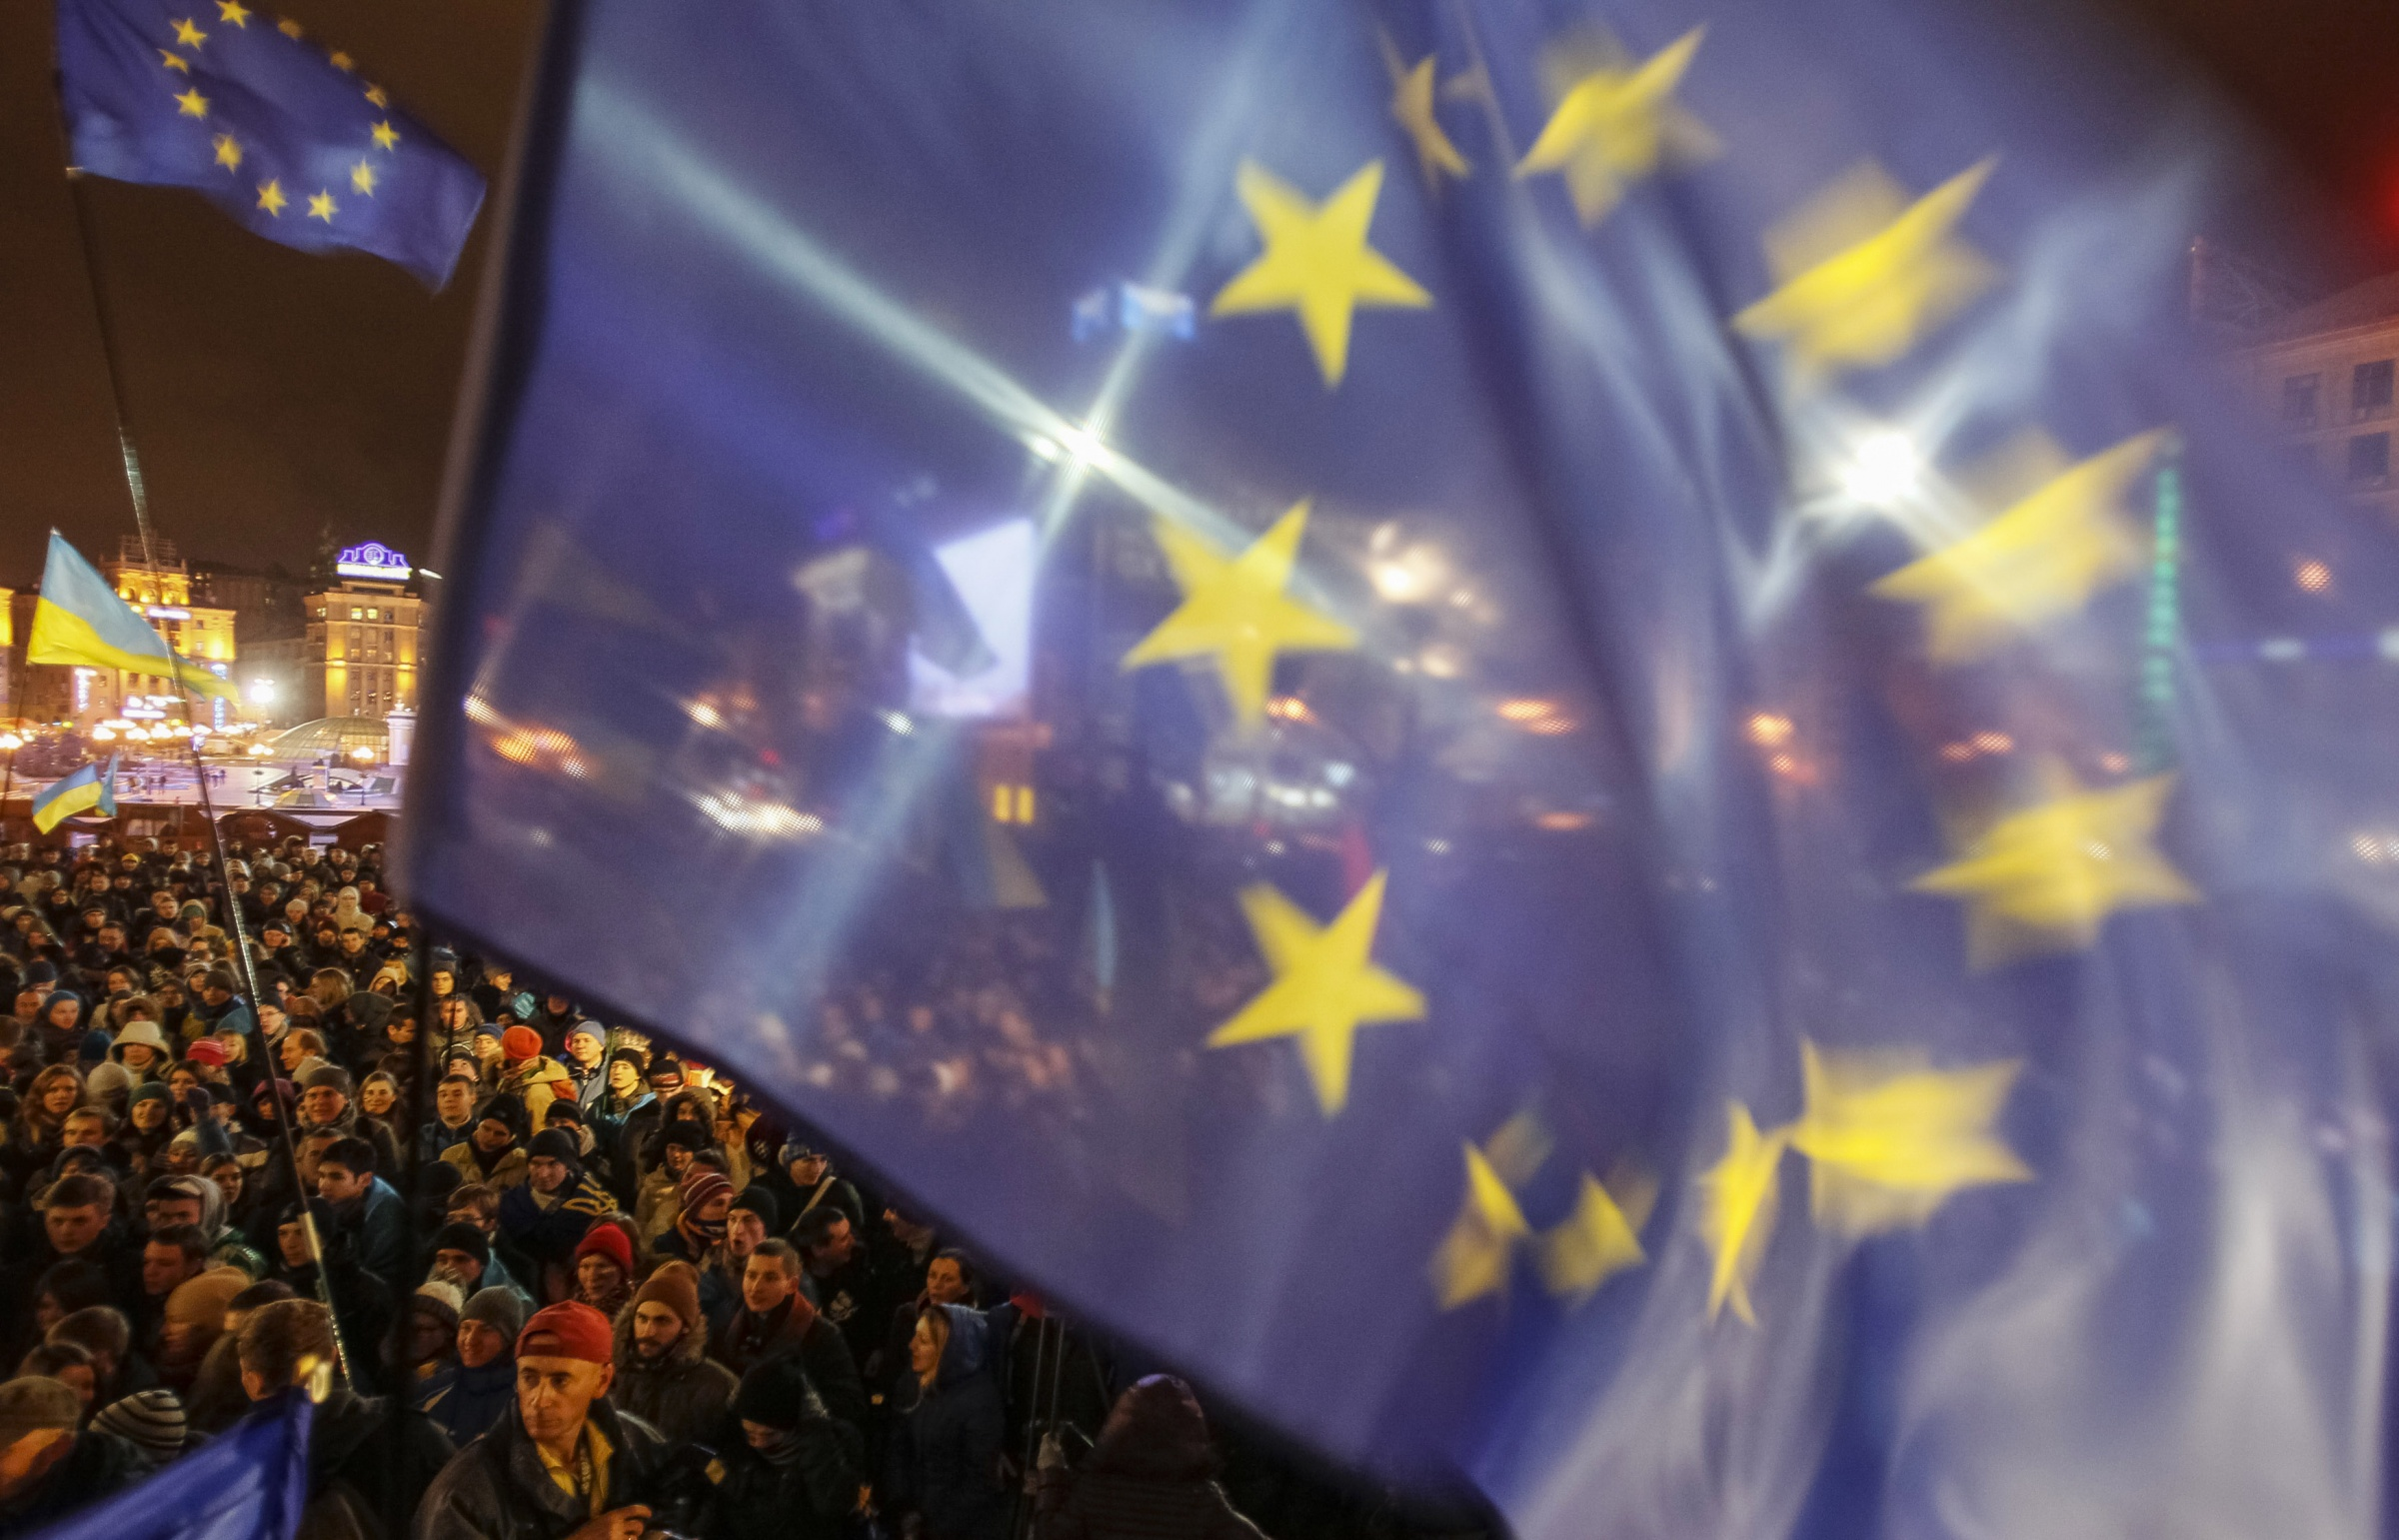 Image for Preaching to the Unconverted: A Strategic View of the EU's Eastern Partnership Program